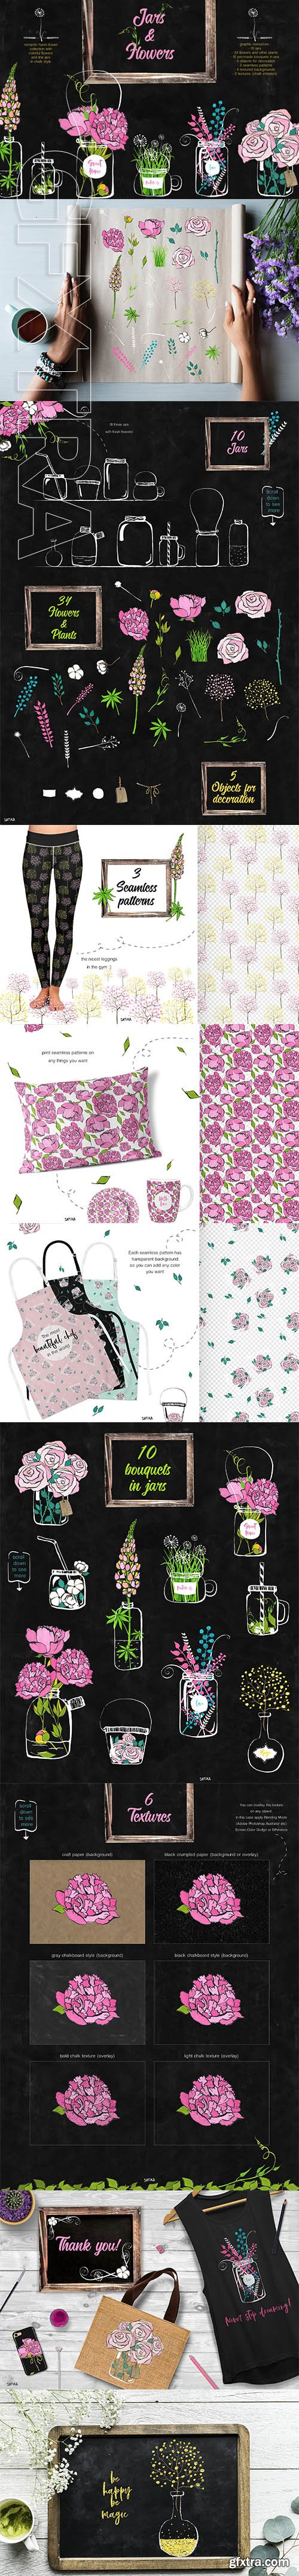 Flowers and jars clipart collection